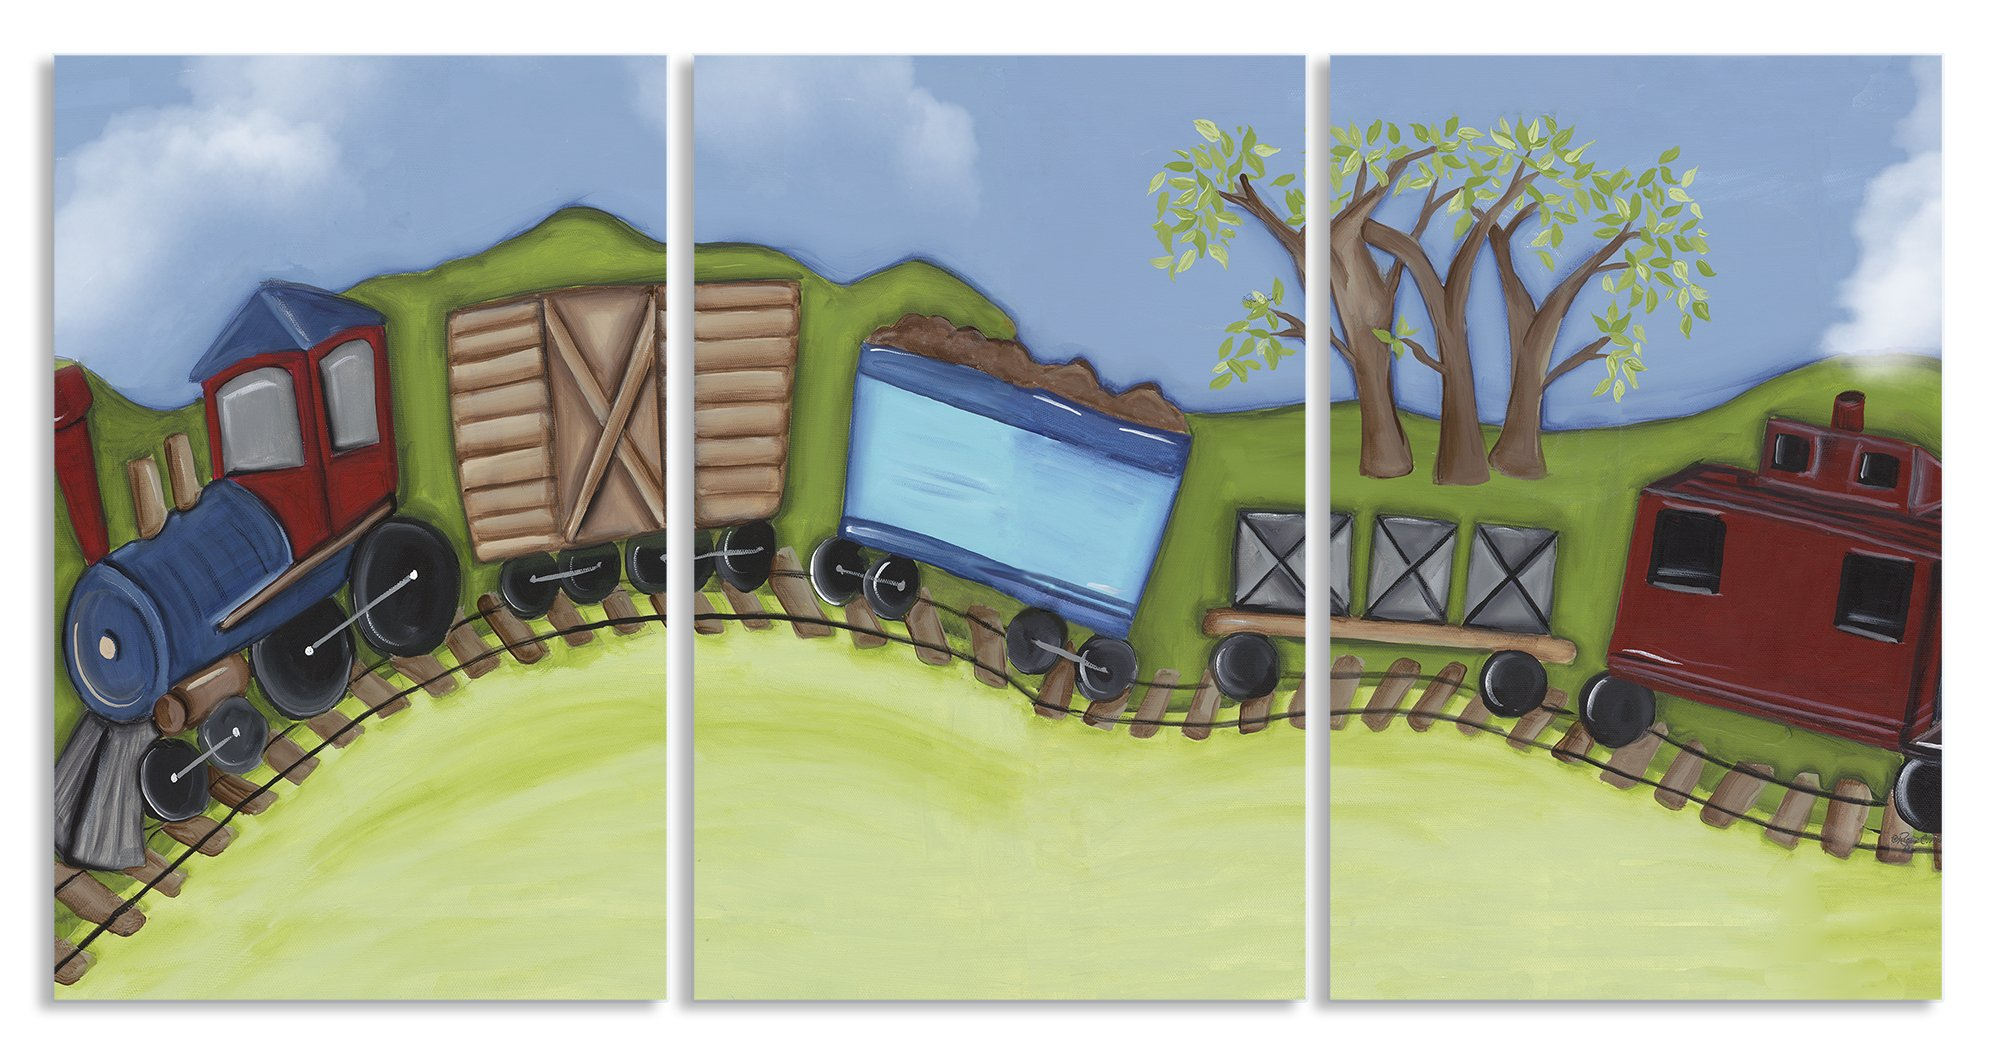 The Kids Room by Stupell Choo Choo Train Travelling On Hillside 3-Pc Rectangle Wall Plaque Set, 11 x 0.5 x 15, Proudly Made in USA